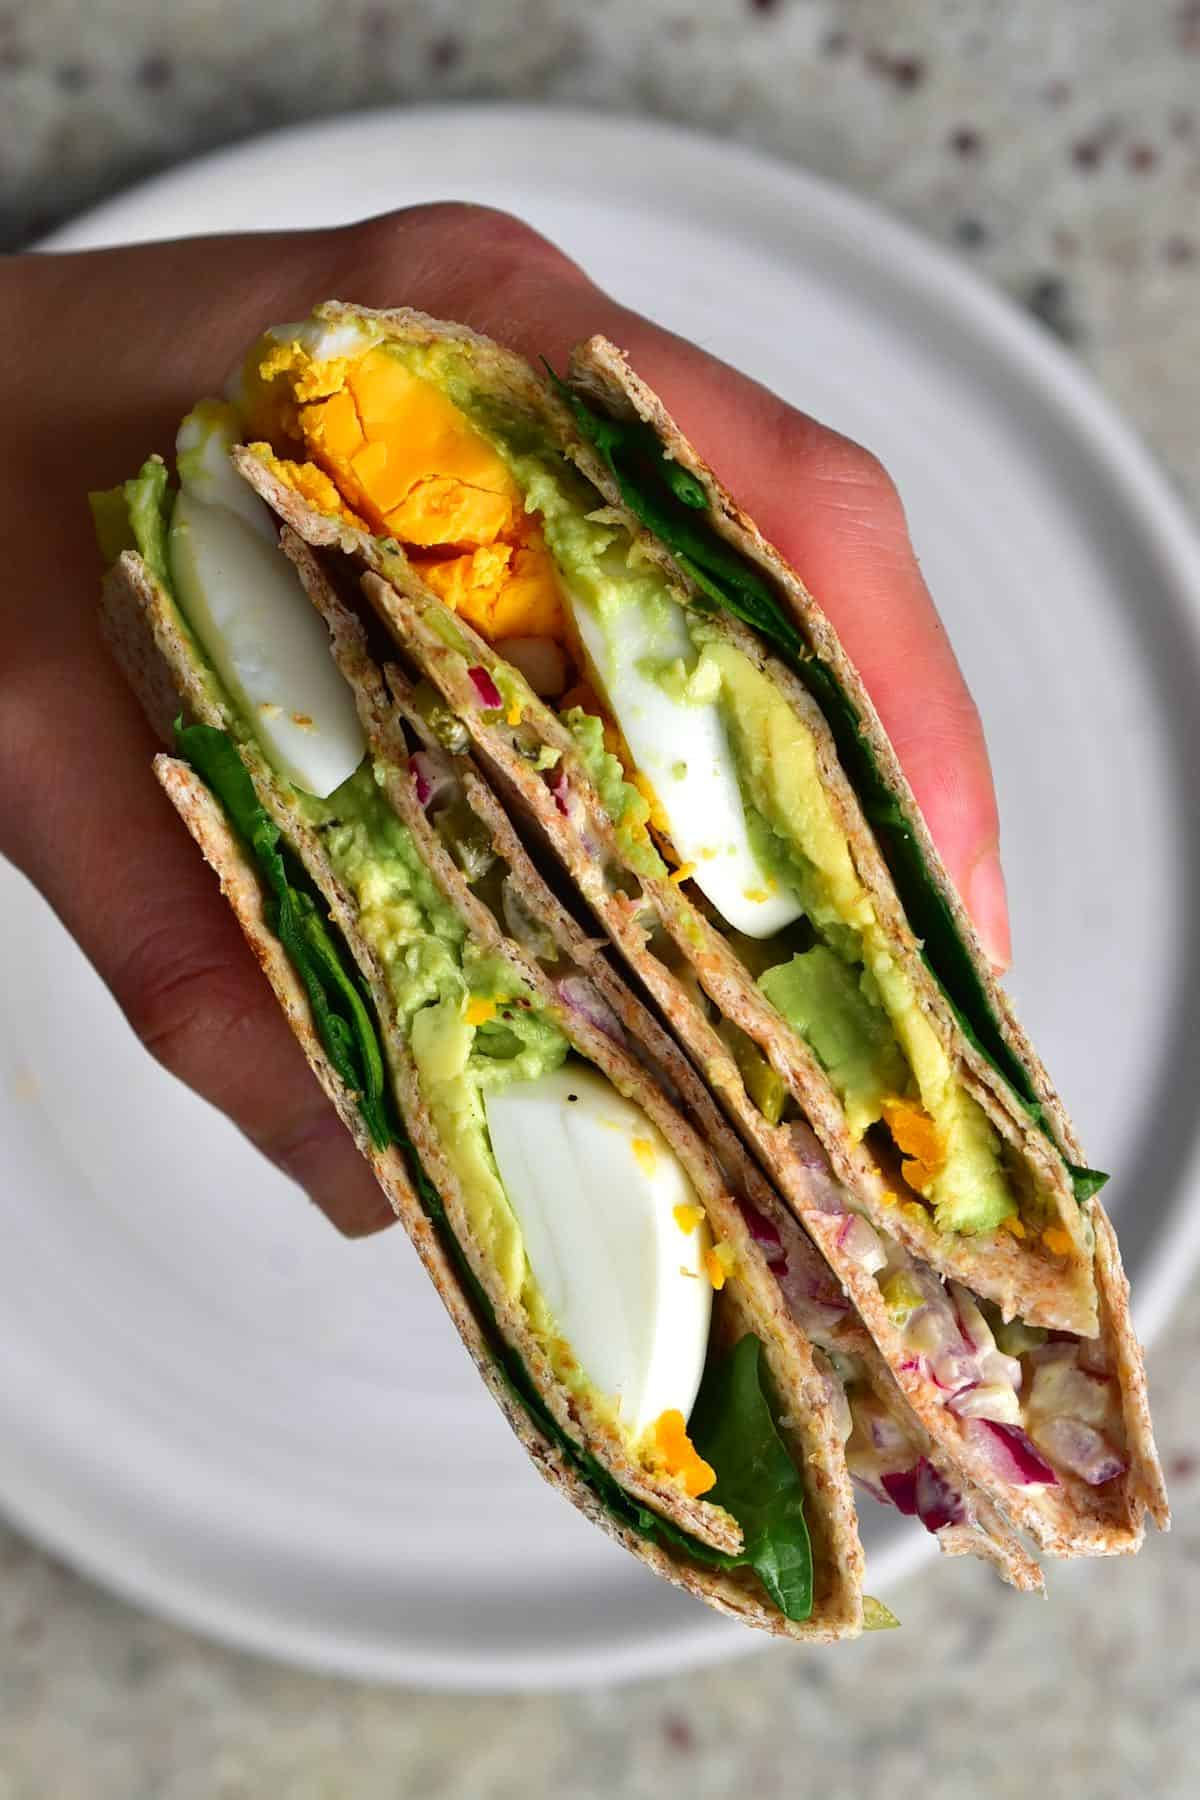 Folded tortilla with add and avocado